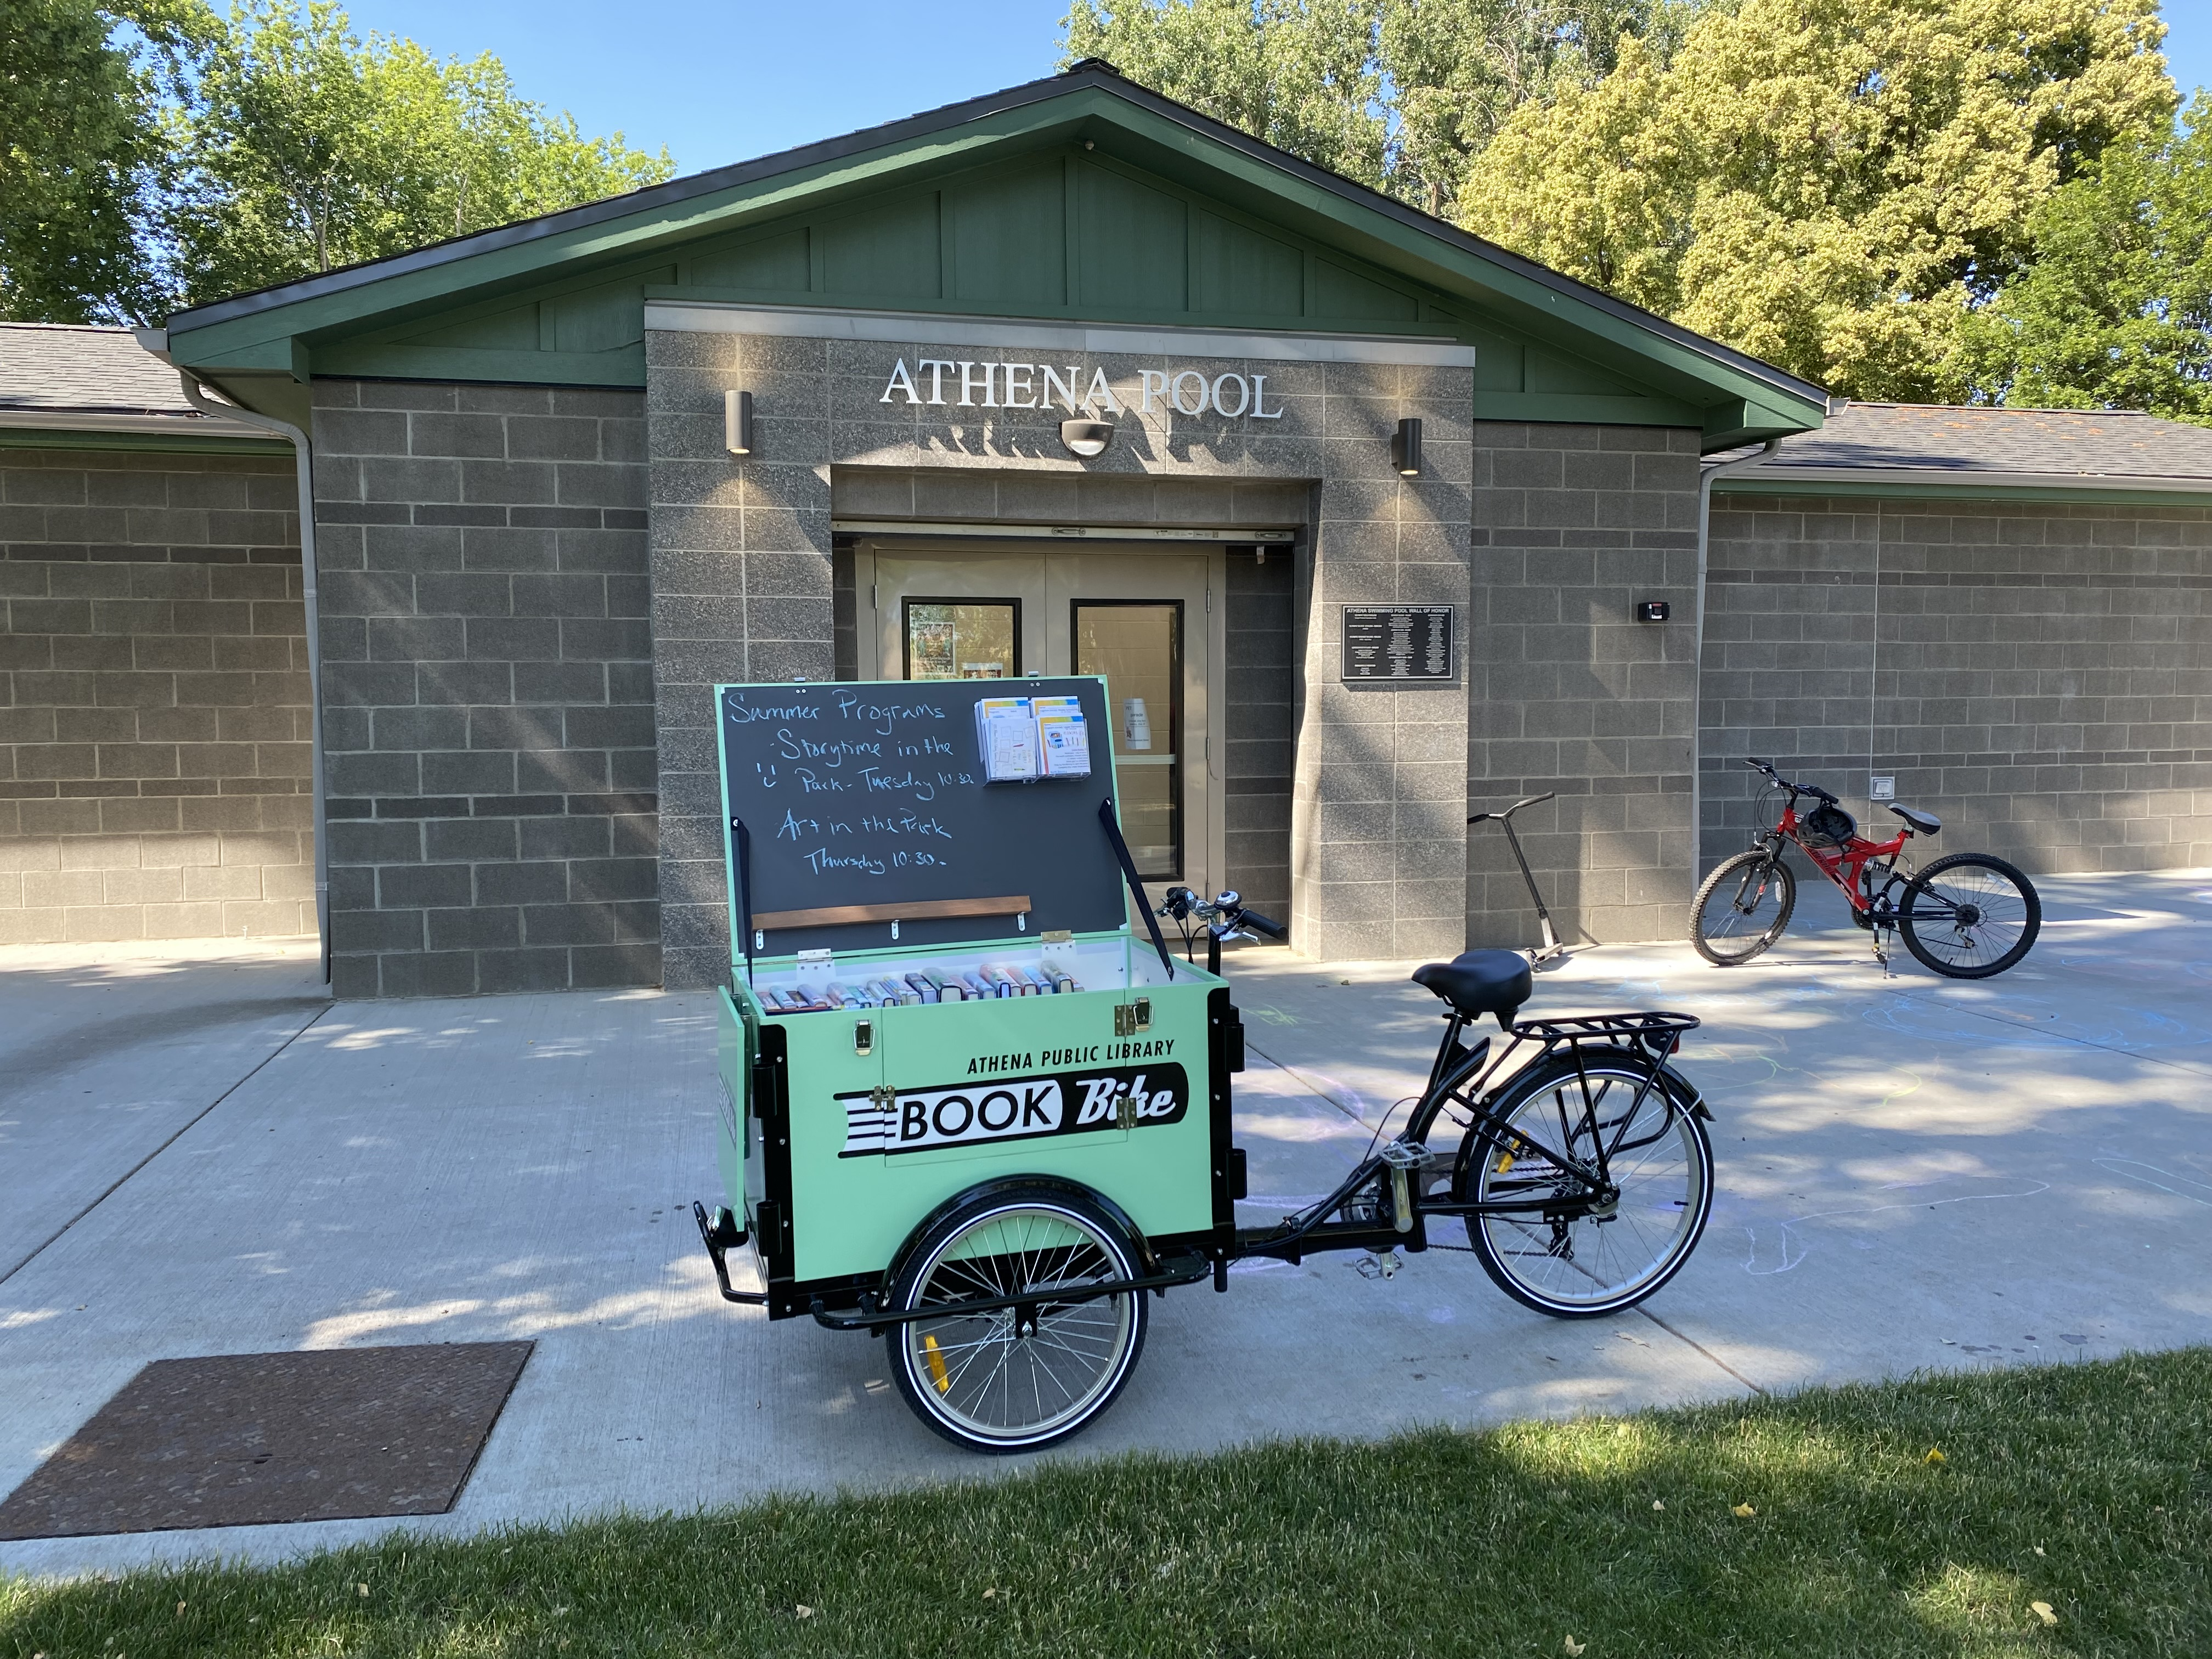 Photograph of the book bike at the local pool.